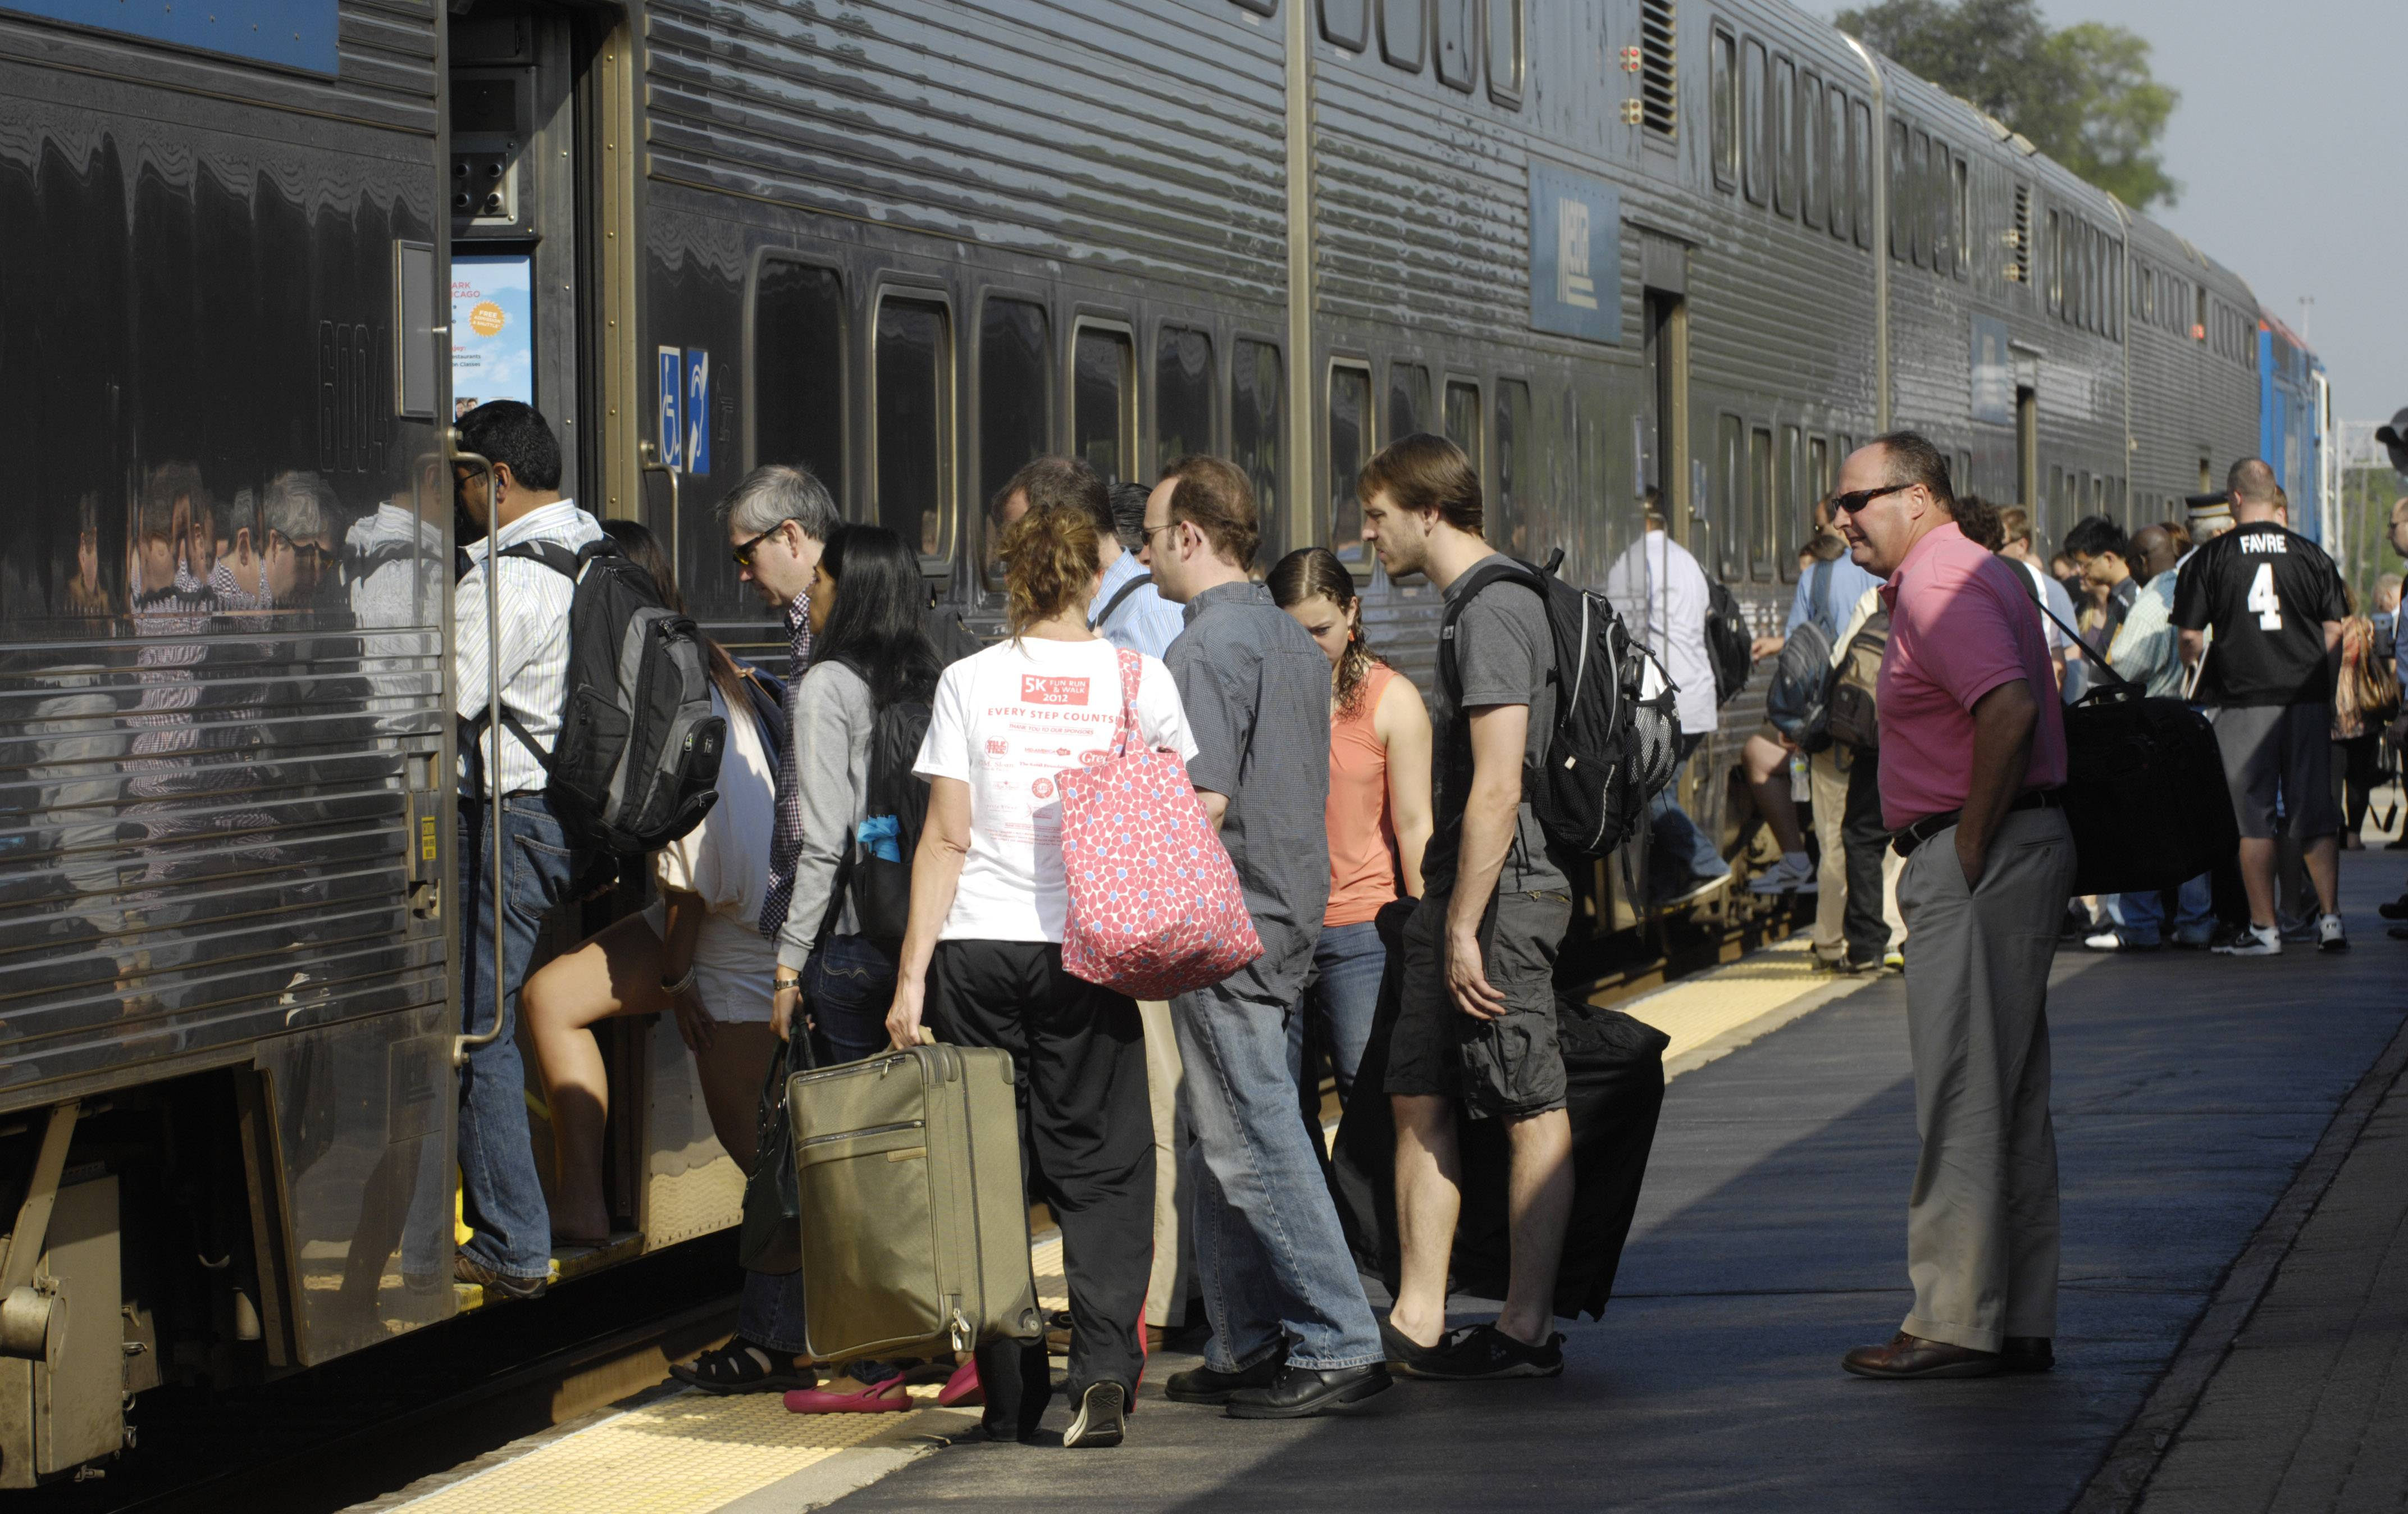 Metra officials hope ethics reforms will win back the public's trust.